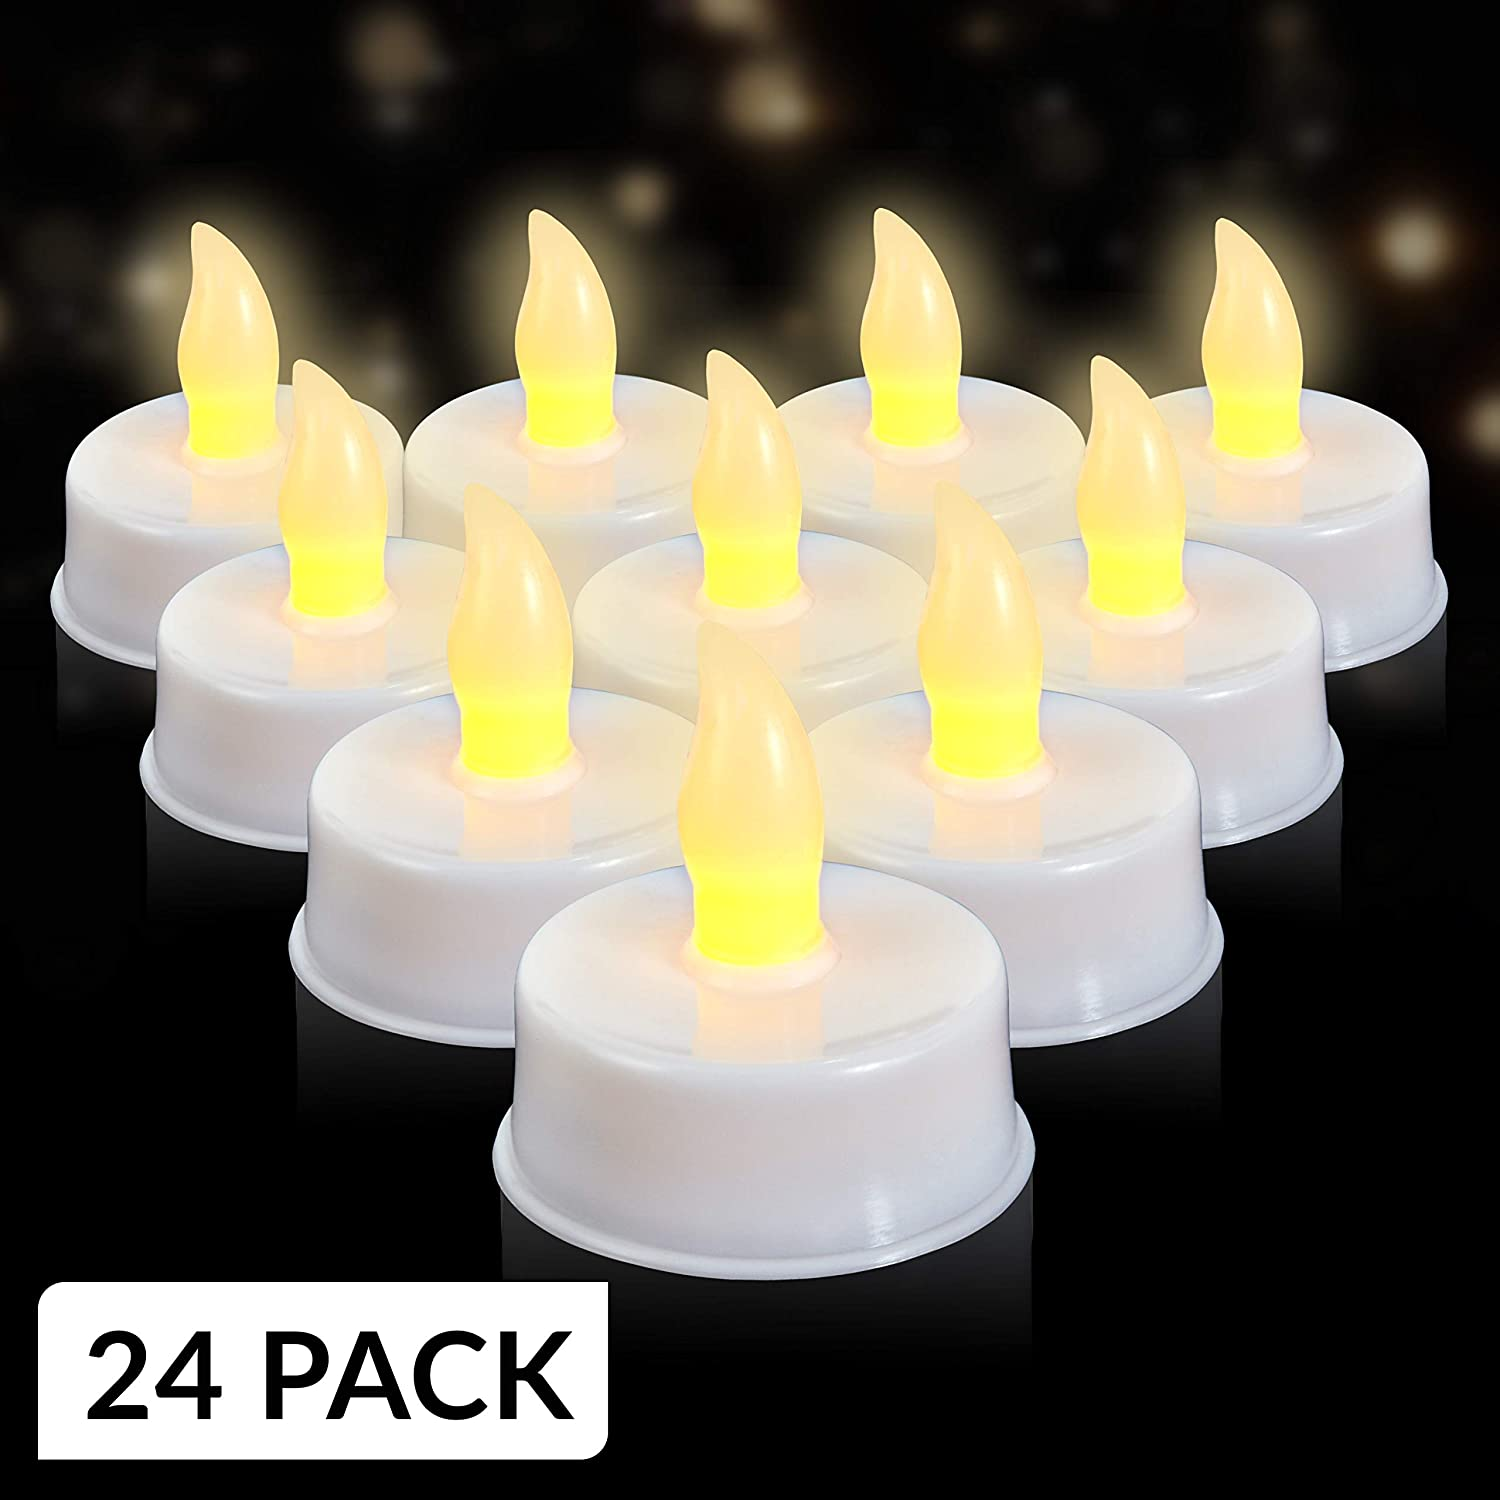 LED Flameless Tealights Pack of 24 White Faux Tea Light Candles with Realistic Flicker Batteries Included by Light Me Up